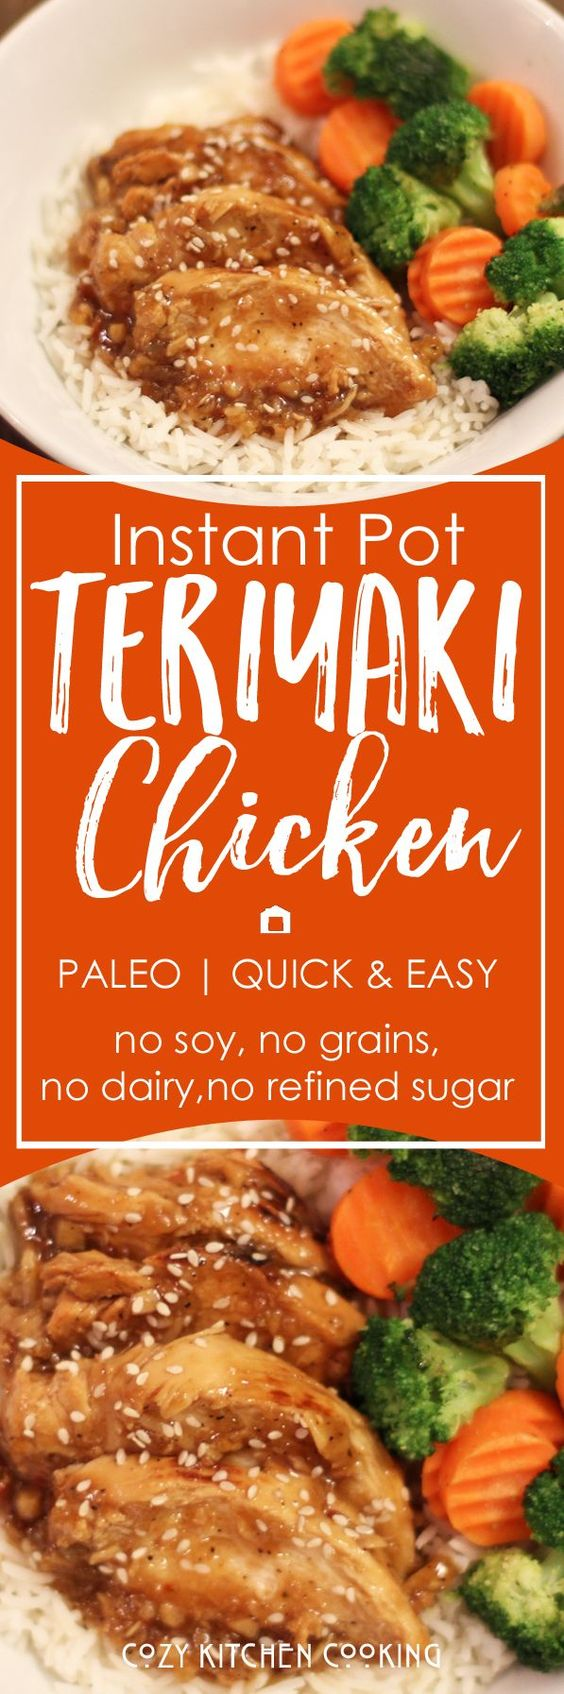 Instant Pot Teriyaki Chicken recipe that is paleo, soy-free, grain-free, refined sugar-free, and comes together so fast!